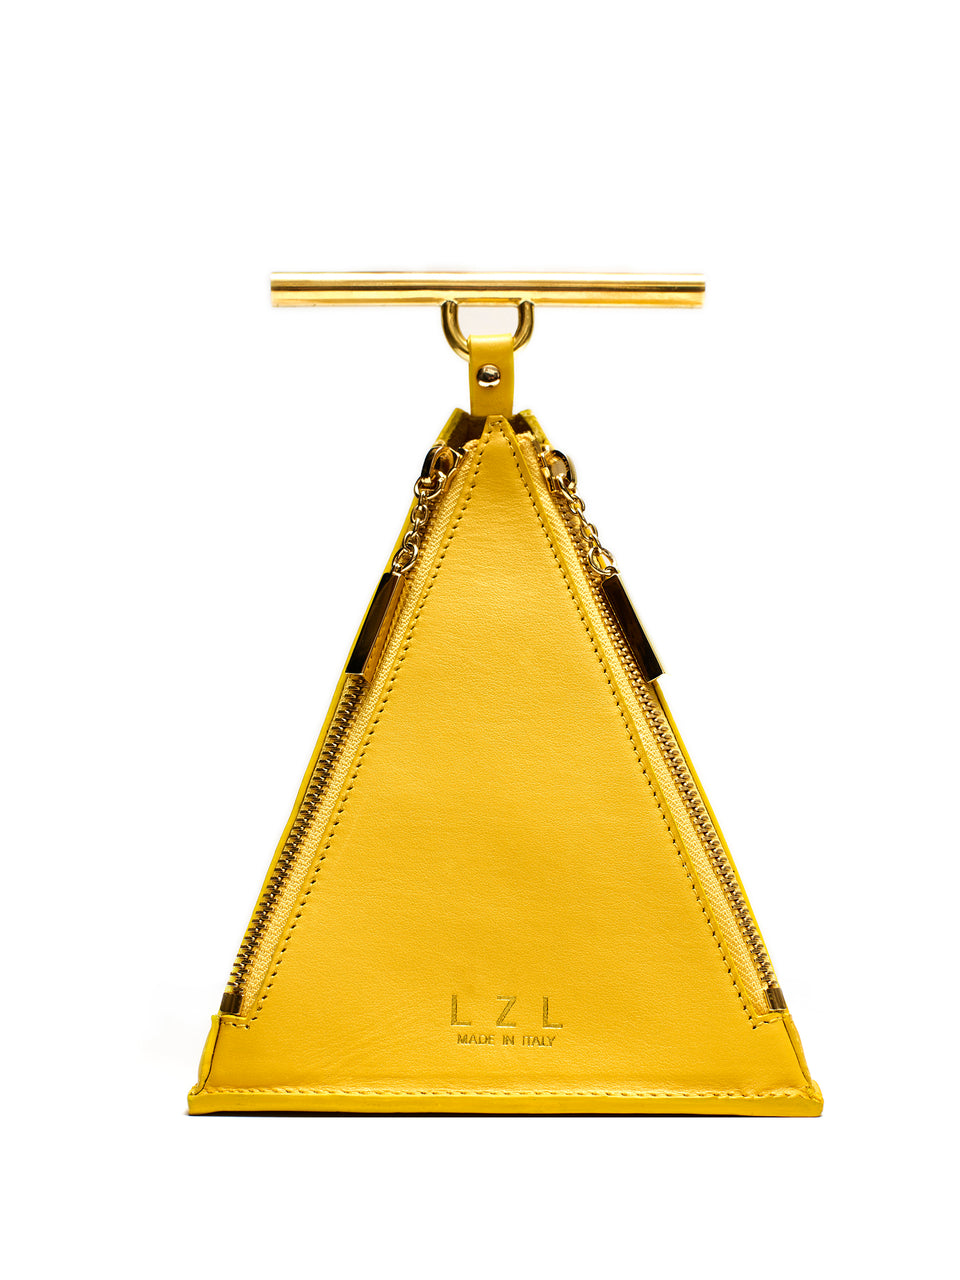 LZL Pyramid Bag 002 Yellow - Front